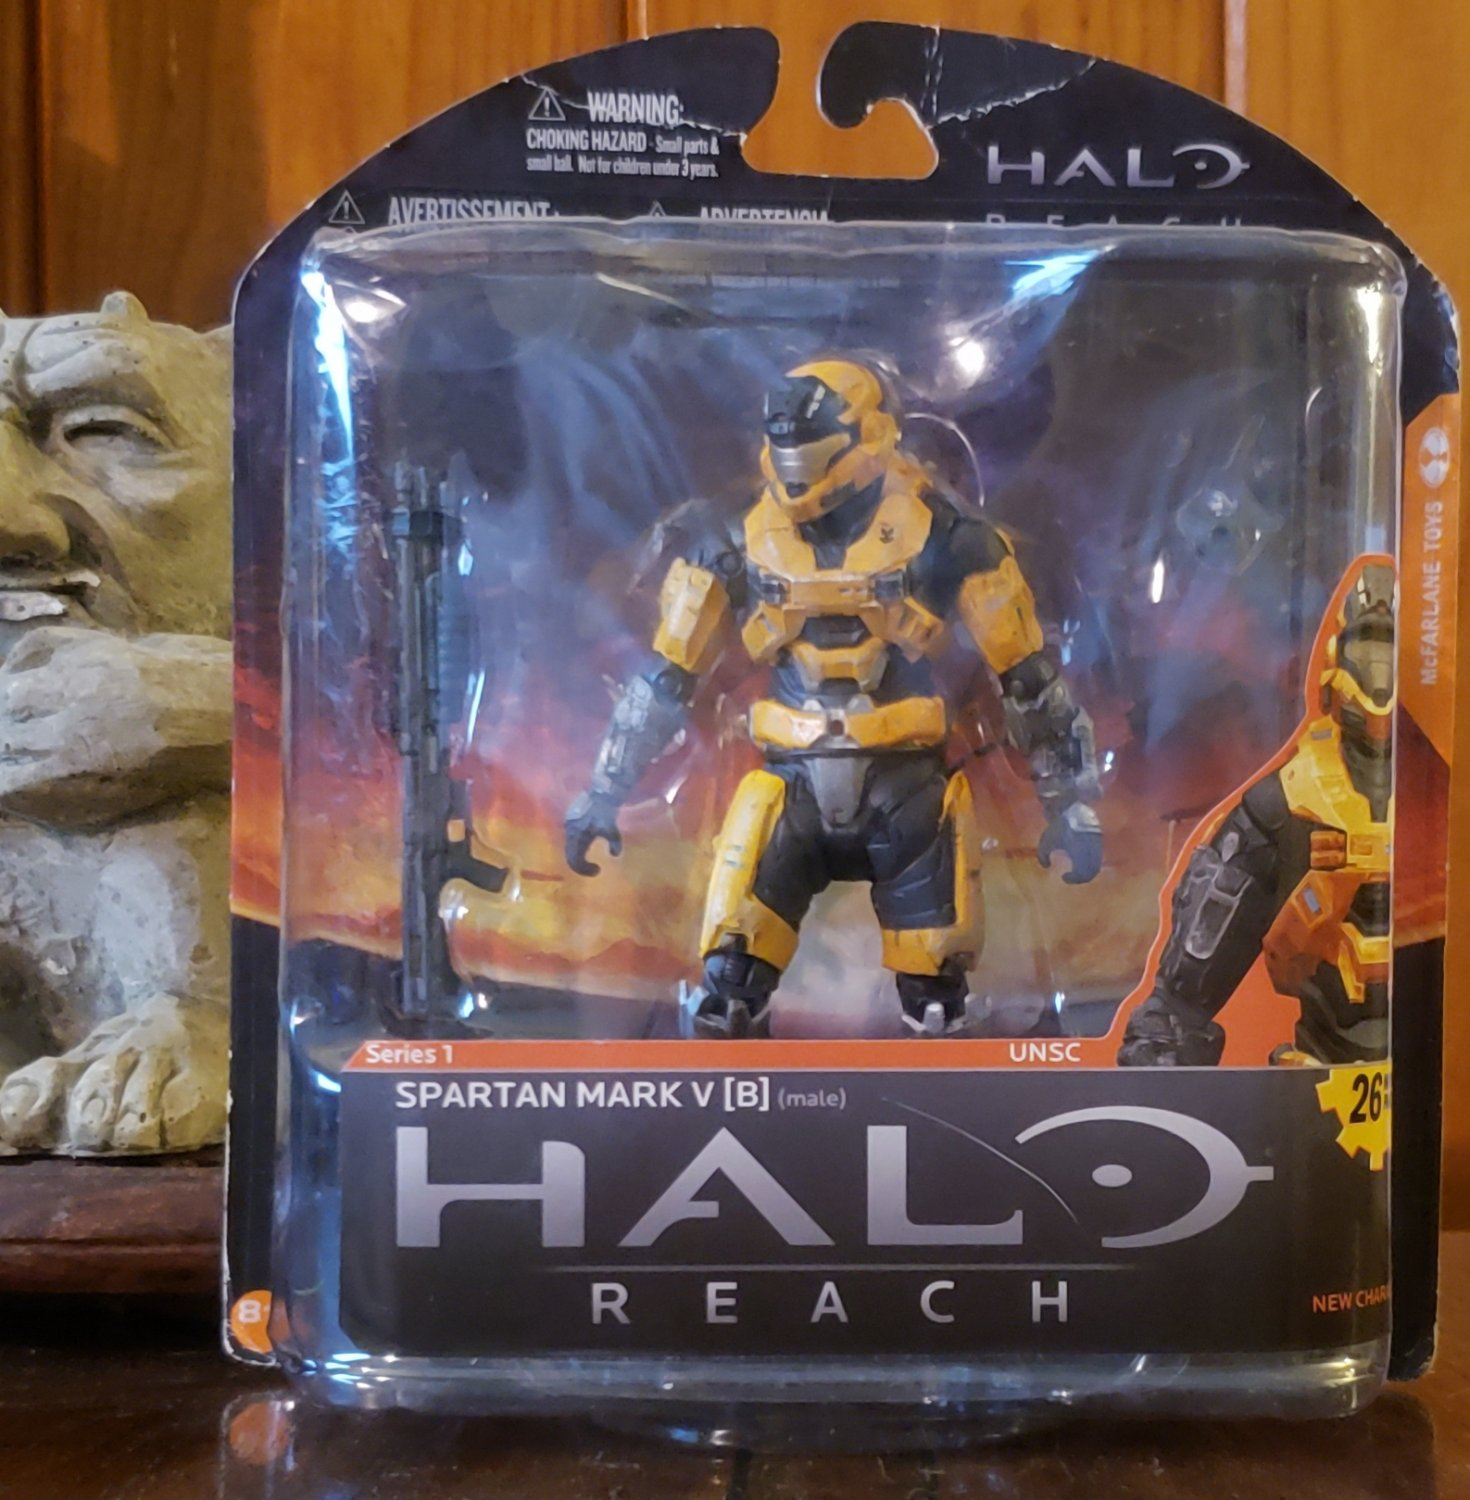 HALO REACH SERIES 1 -- MARK V (B) MALE --  GOLD/STEEL -- BRAND NEW